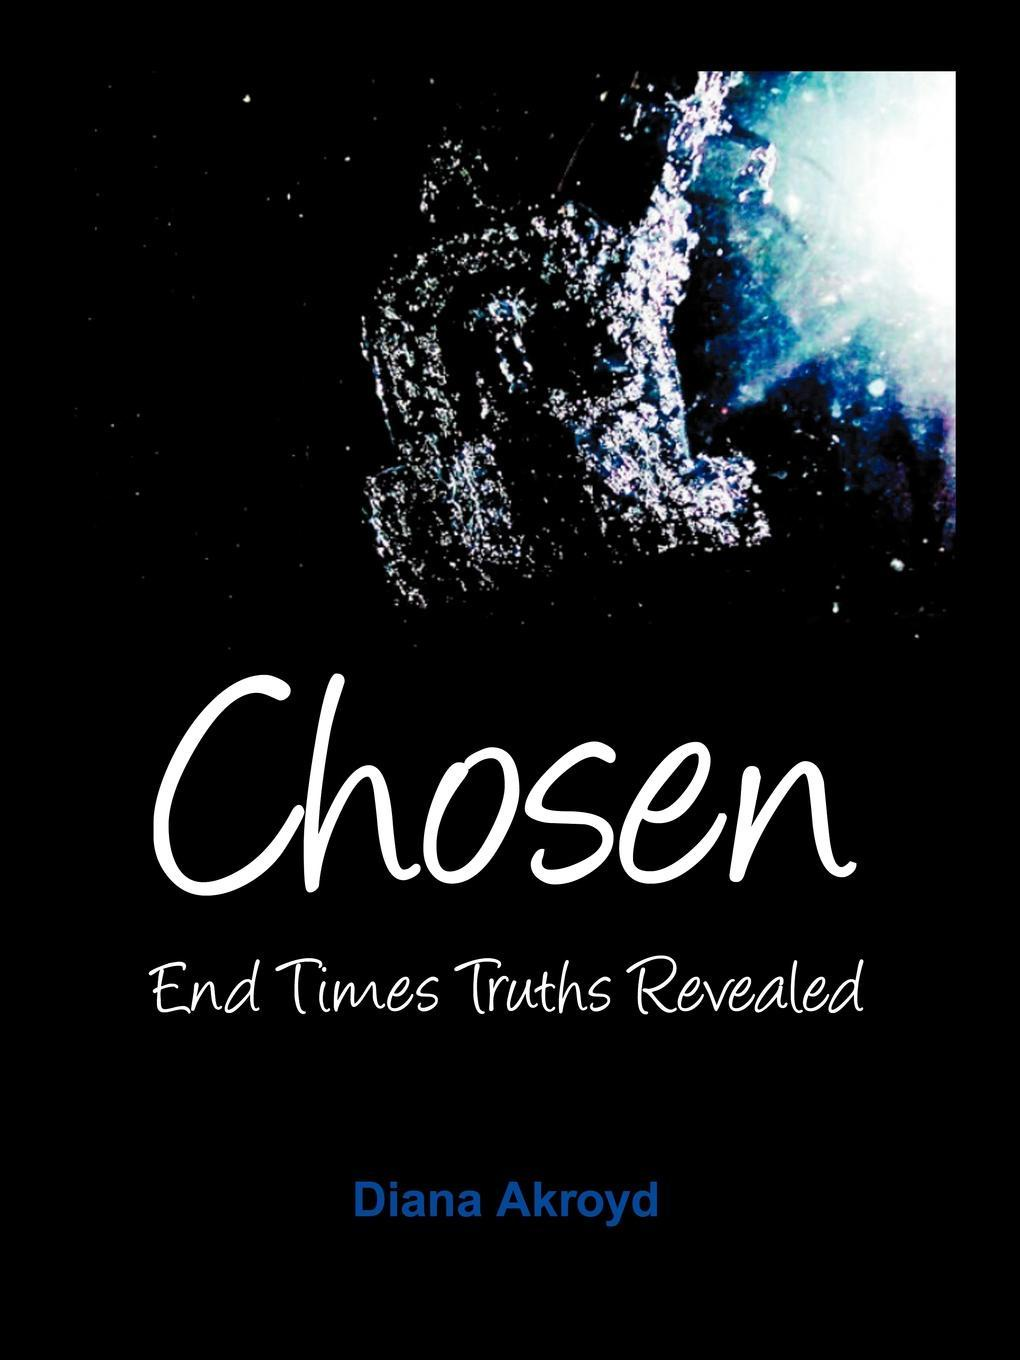 Diana Akroyd Chosen. End Times Truths Revealed the end times